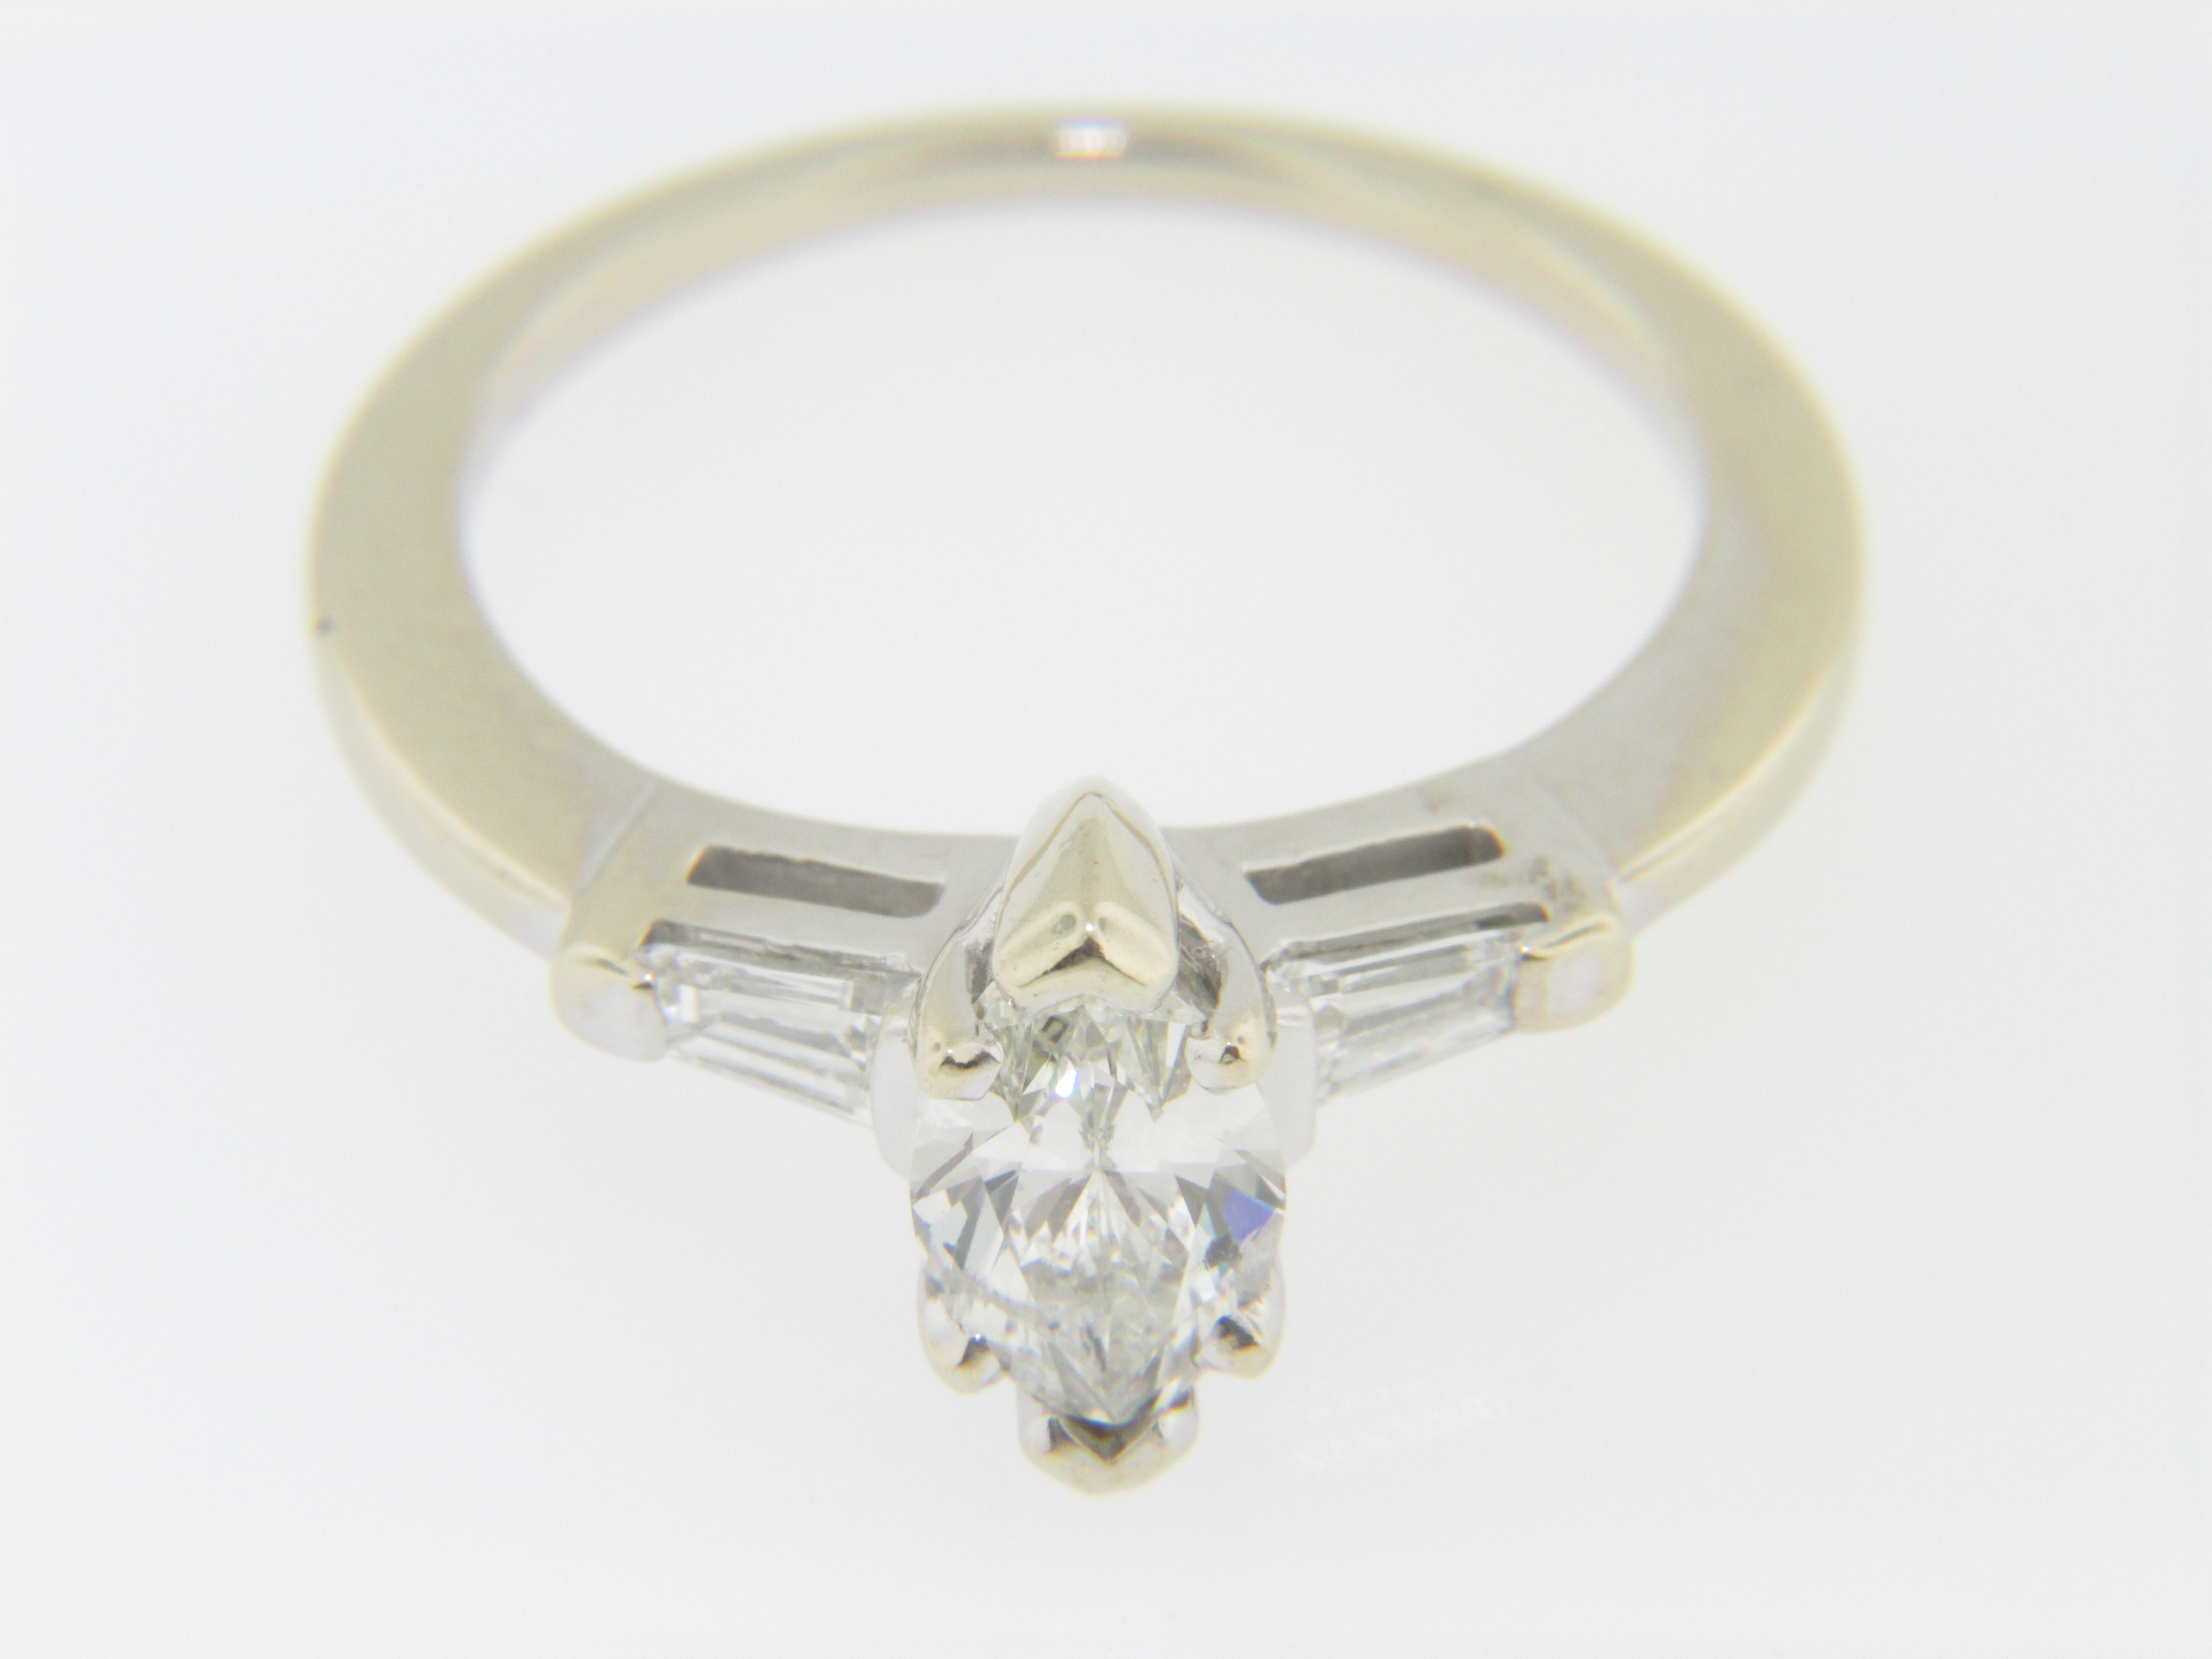 Vintage Marquise & Baguette Diamond Engagement Ring in 14k White Gold Siz